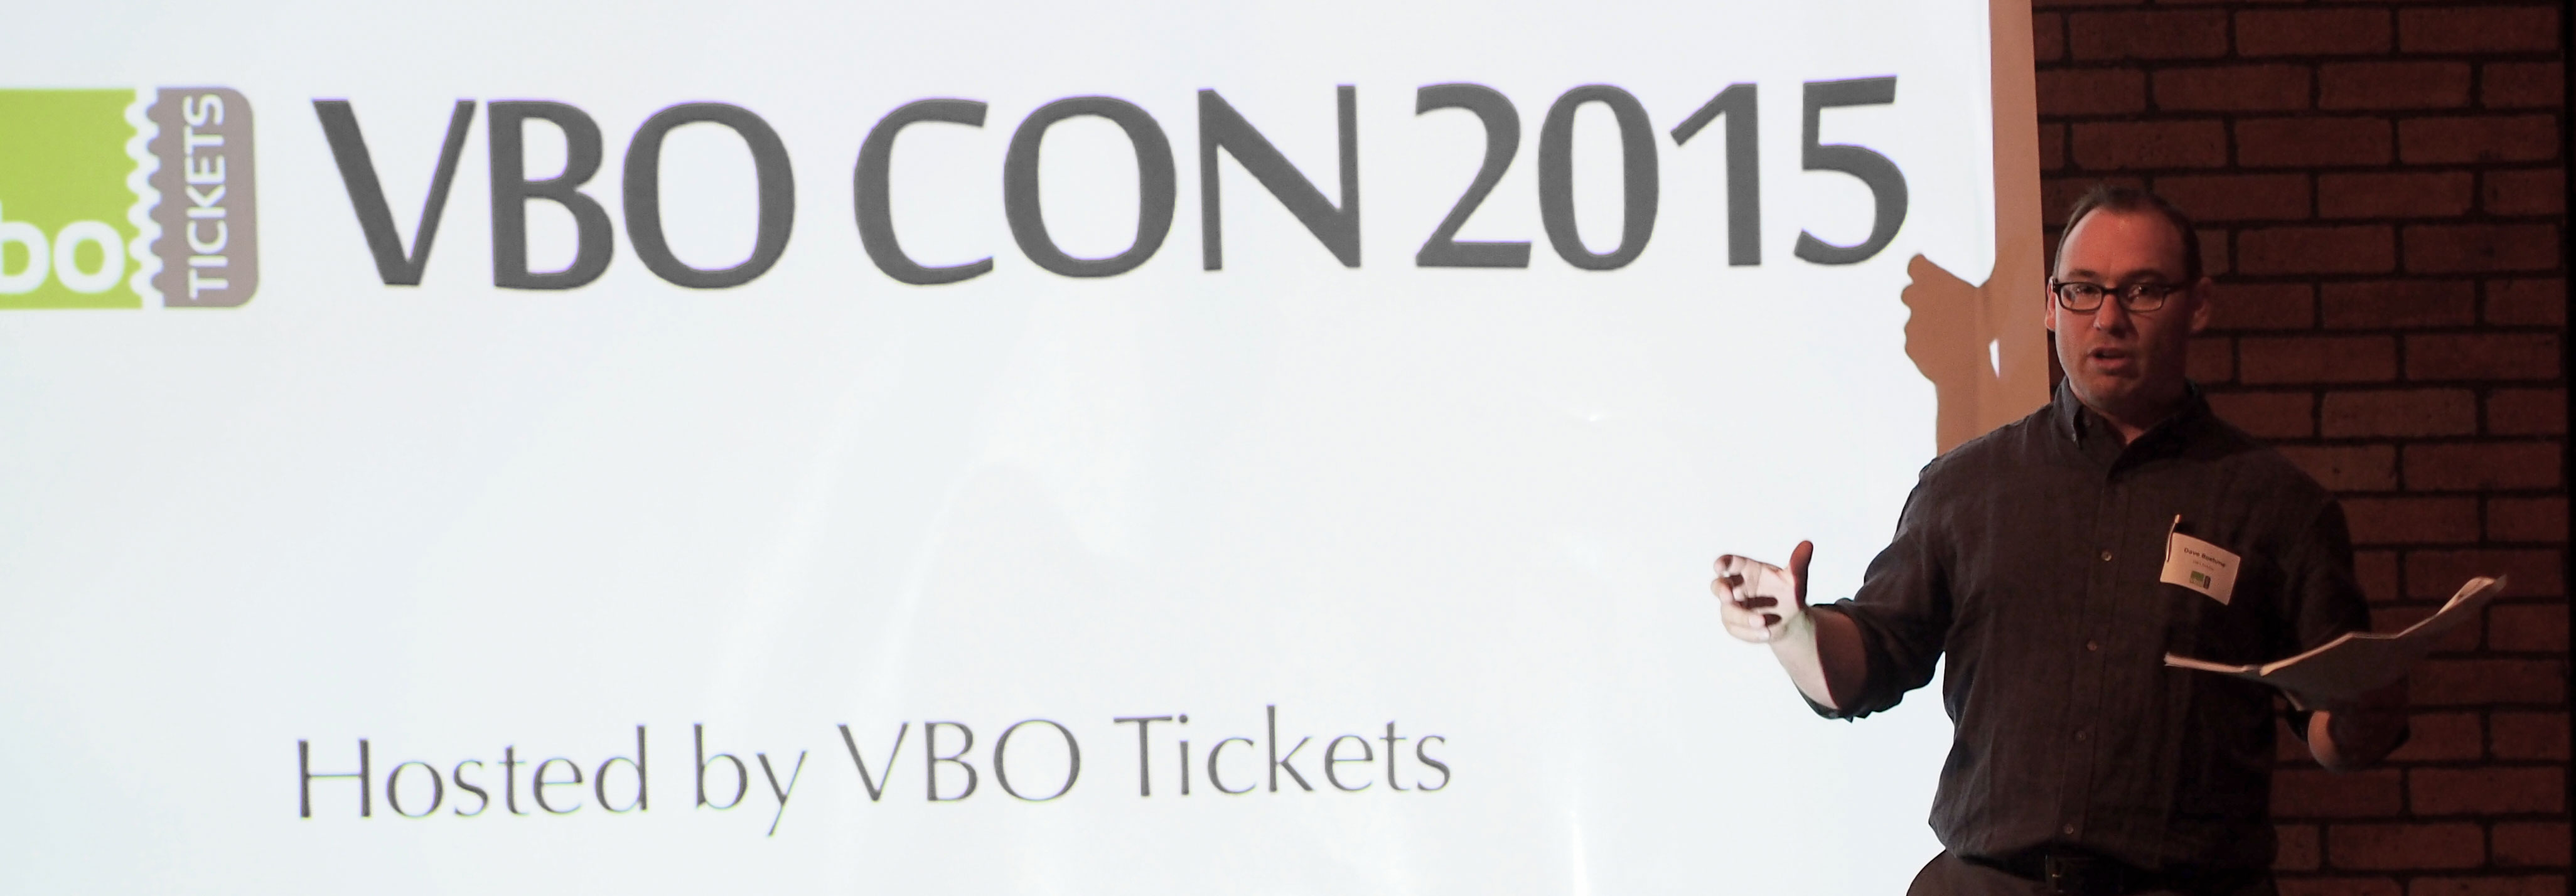 VBO CON 2015 Wrap Up